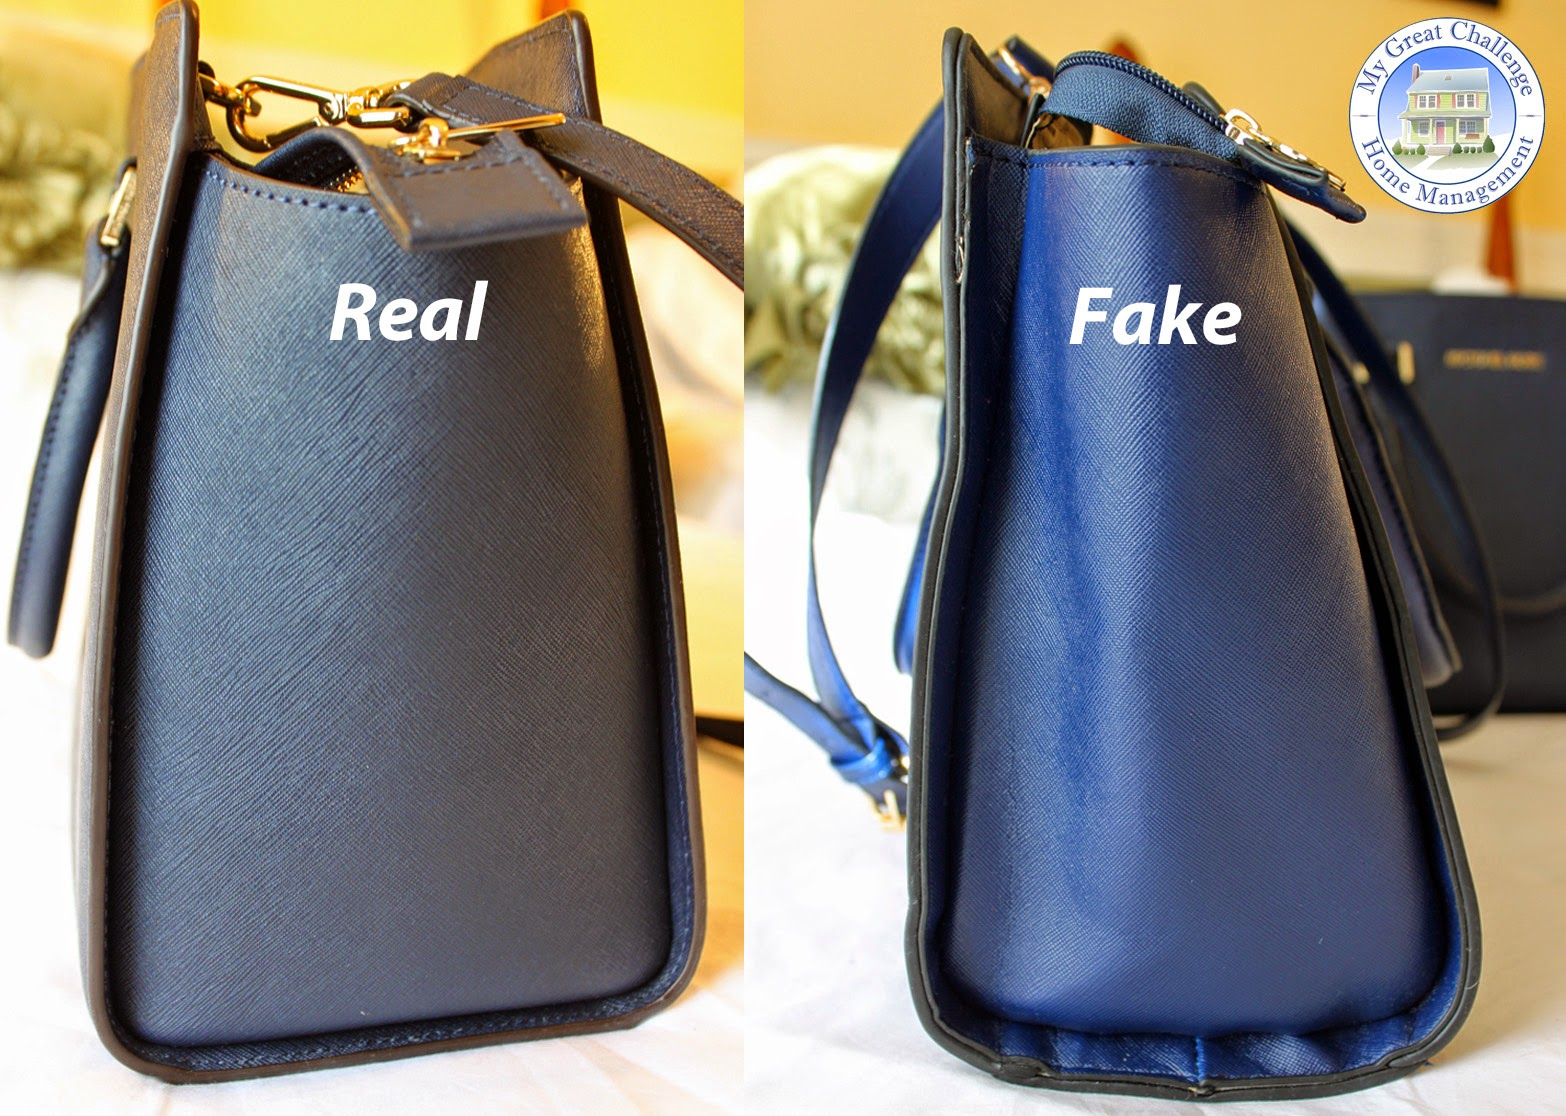 403ef21af8d7 Because Saffiano leather is rigid, it stands stiffer and will hold its  shape. The fake leather cannot hold in place and the sides tend to collapse.